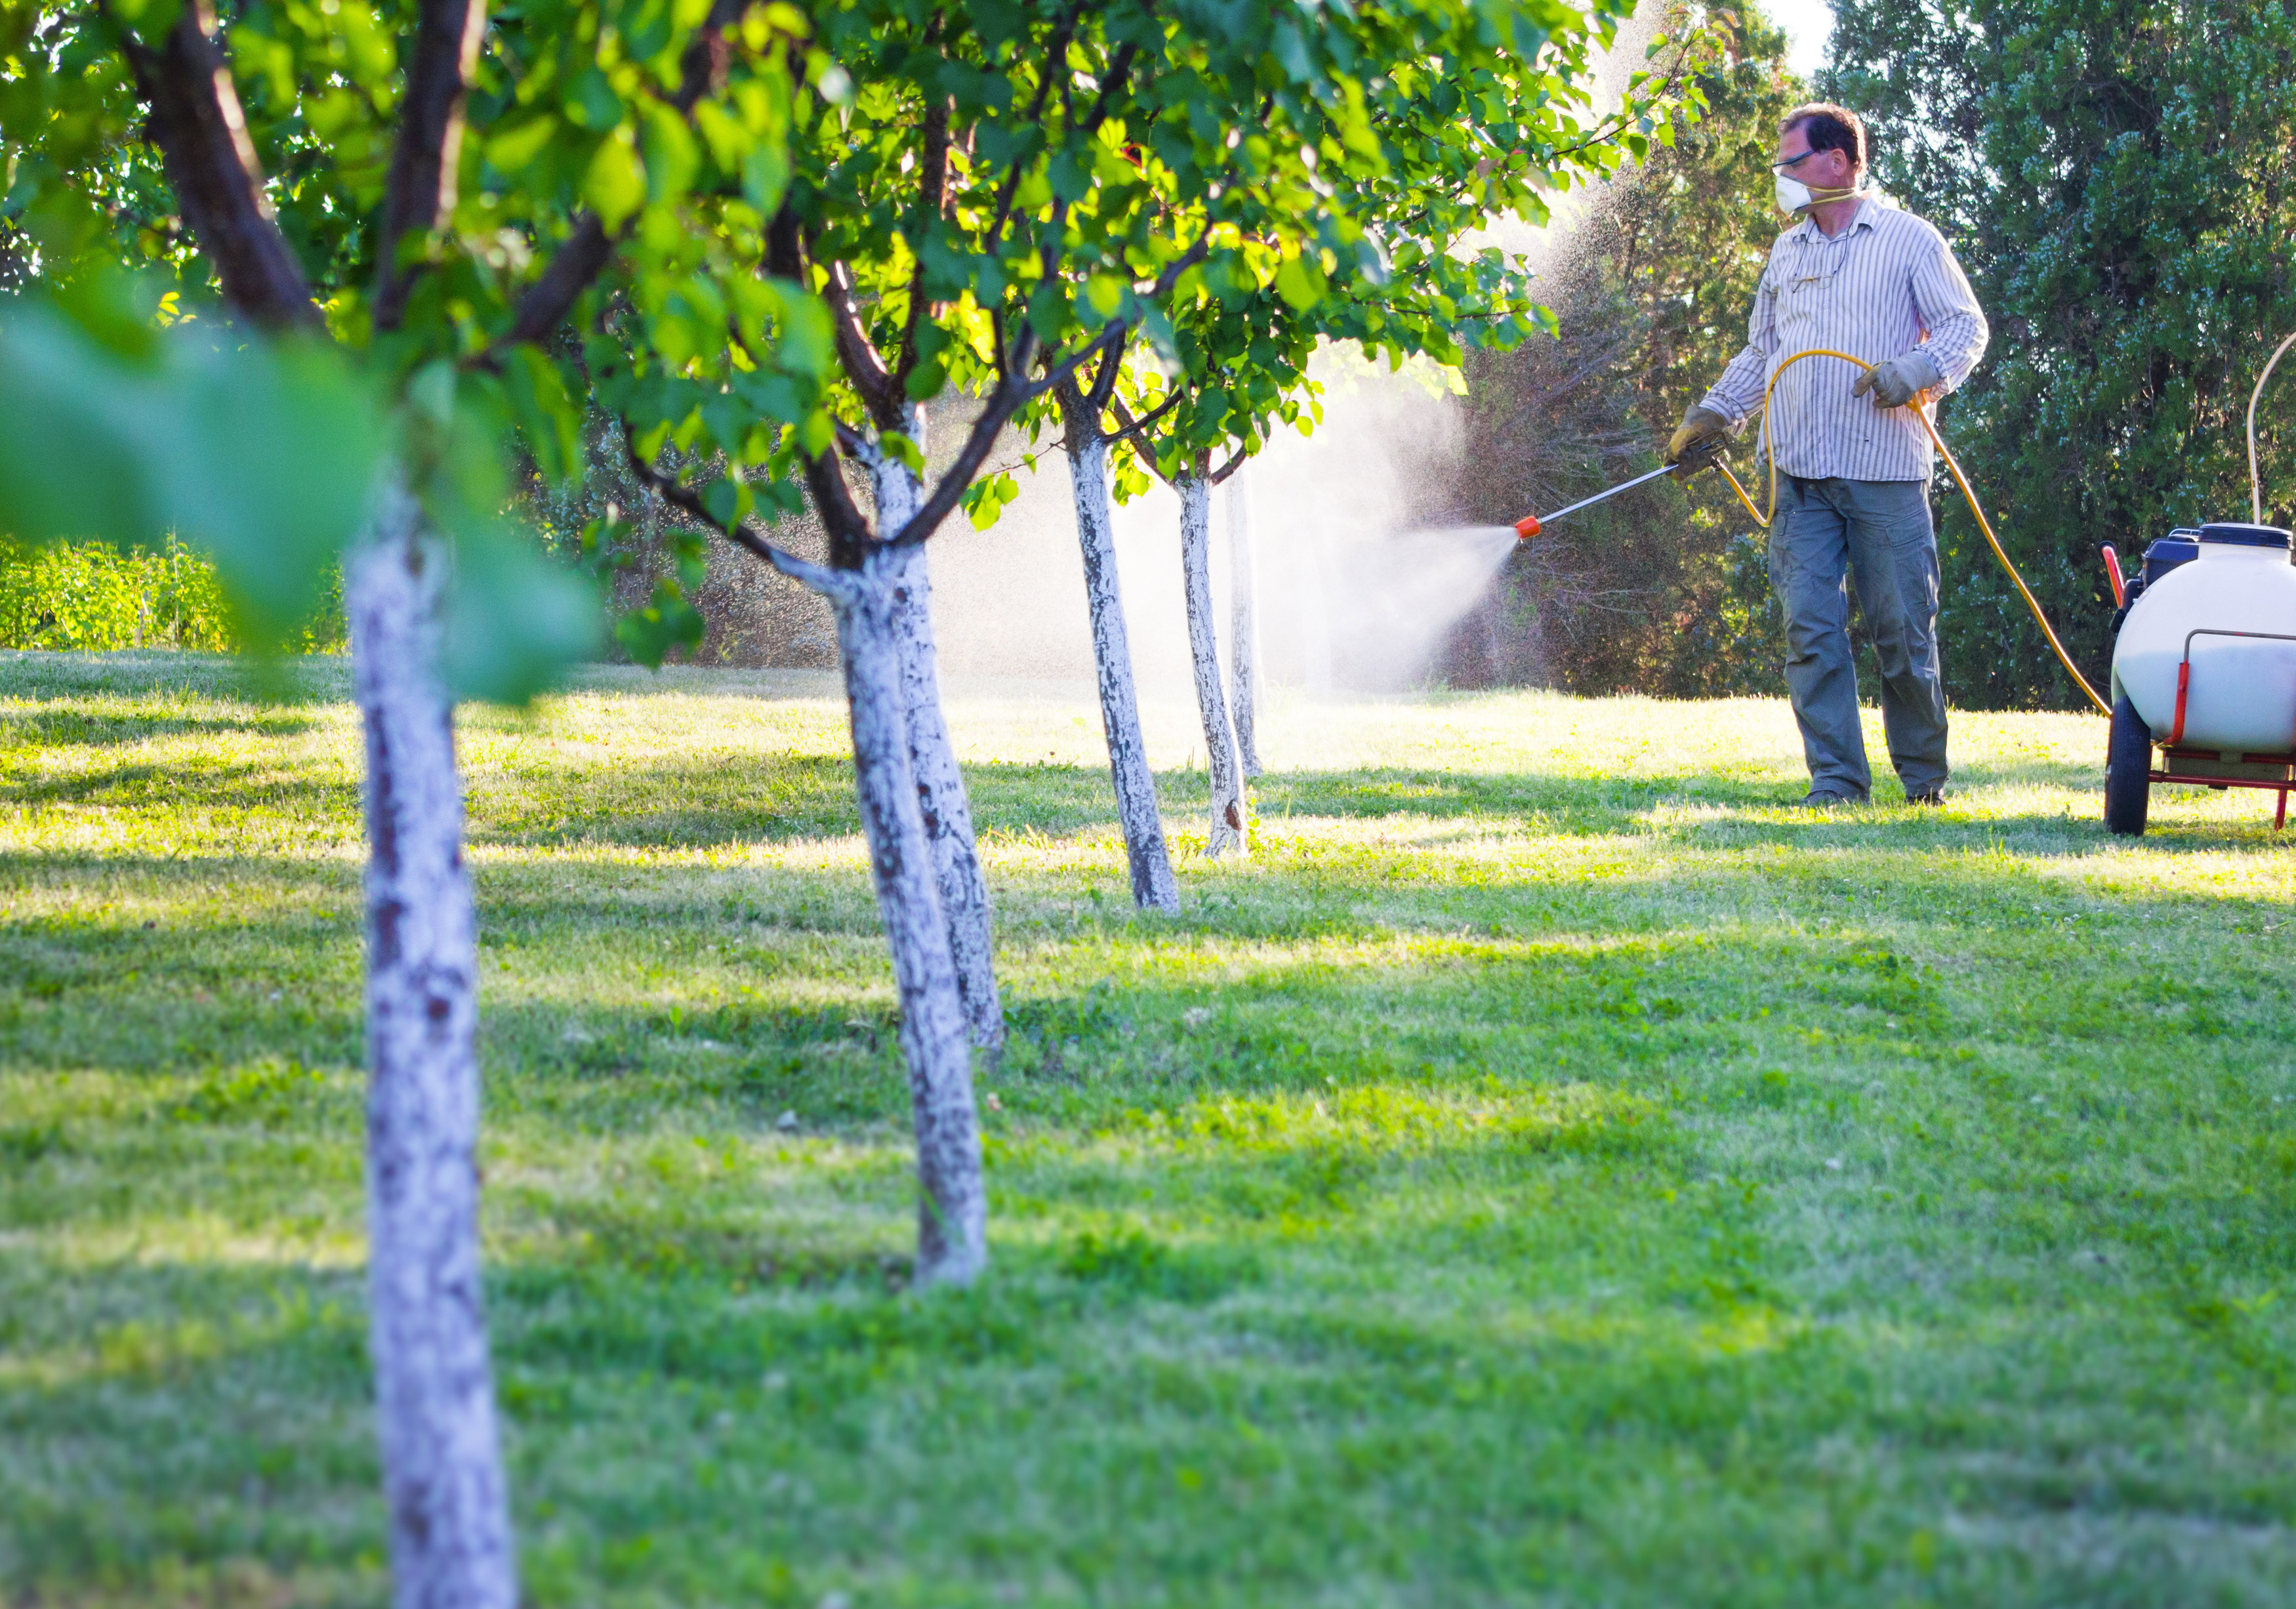 Four Methods For Applying Fertilizers | Home Guides | SF Gate